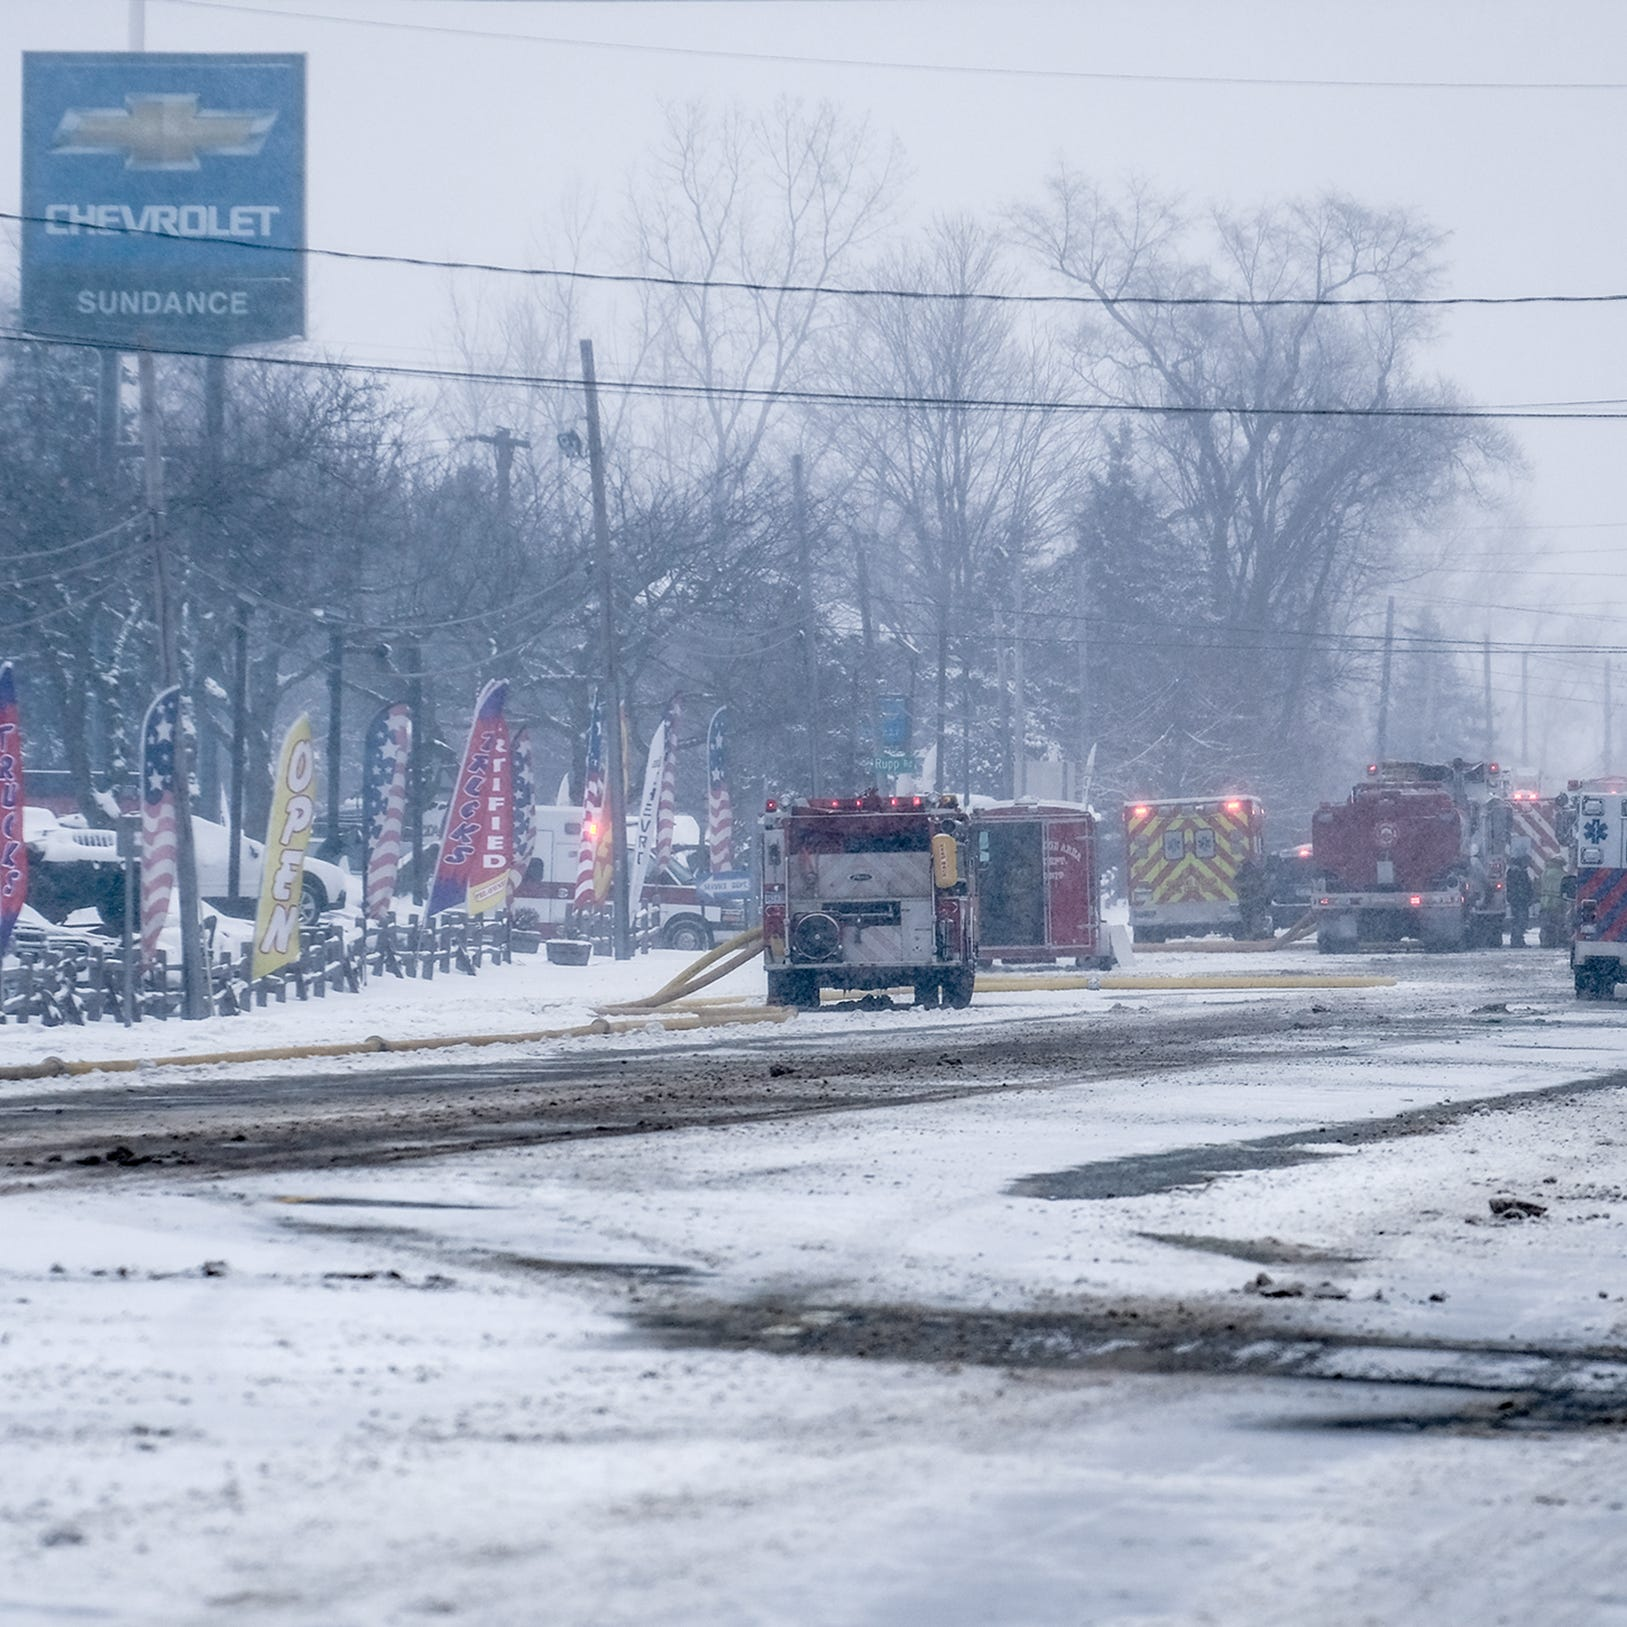 Saginaw closed as fire fighters battle blaze at Sundance Chevrolet body shop